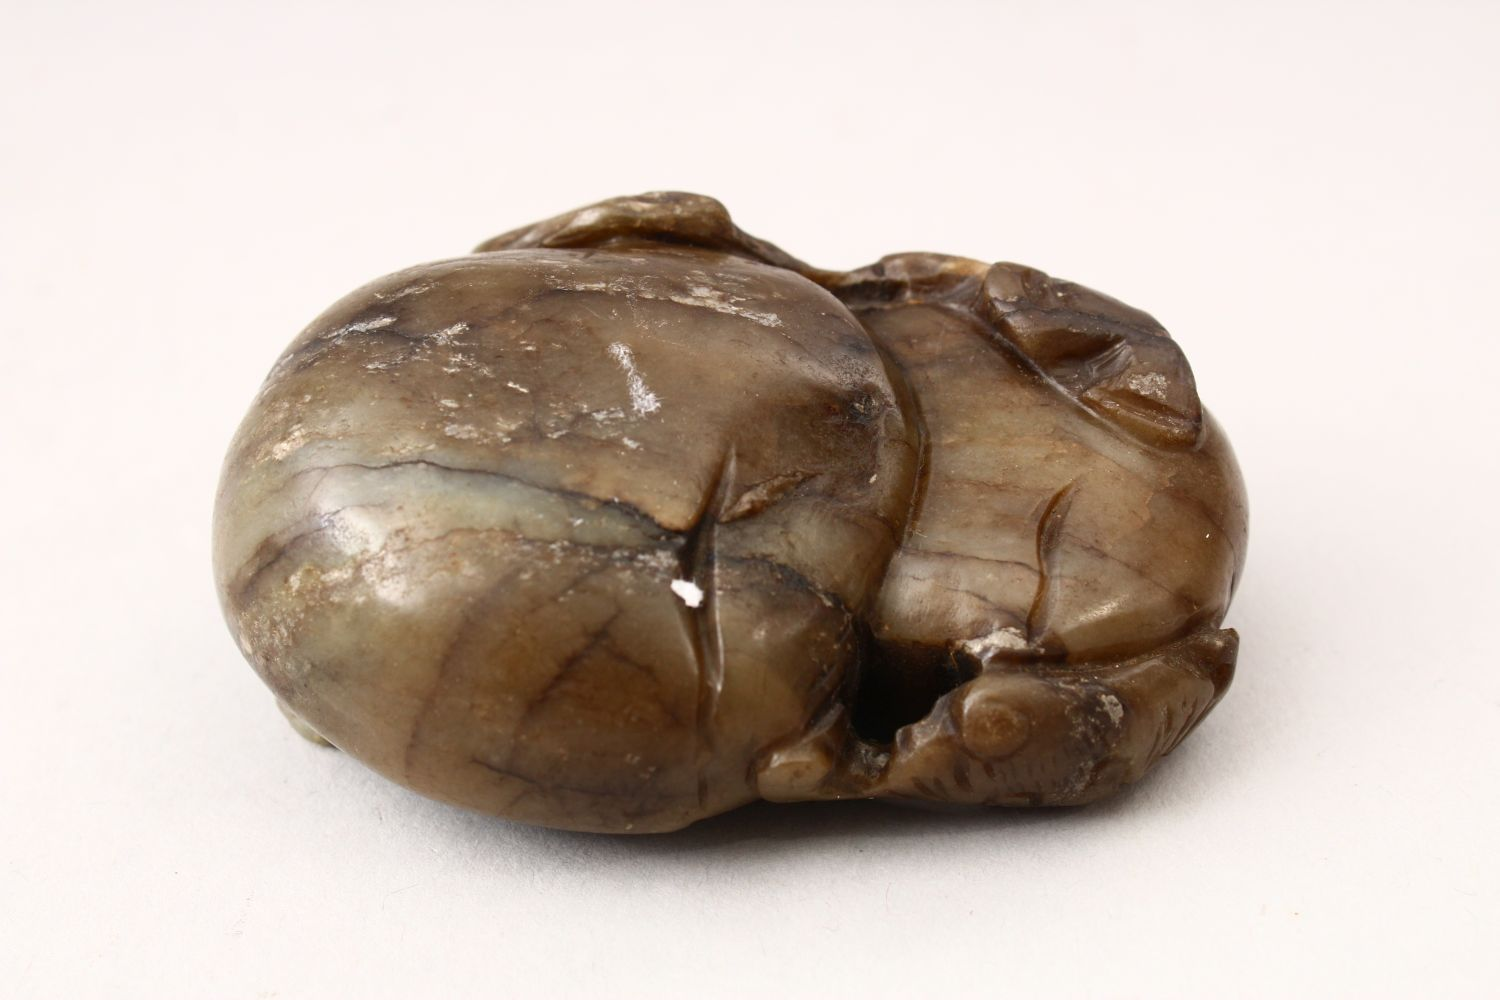 A GOOD 19TH / 20TH CENTURY CHINESE CARVED JADE PEBBLE OF BATS & FRUIT, carved to depict two bats - Image 2 of 3